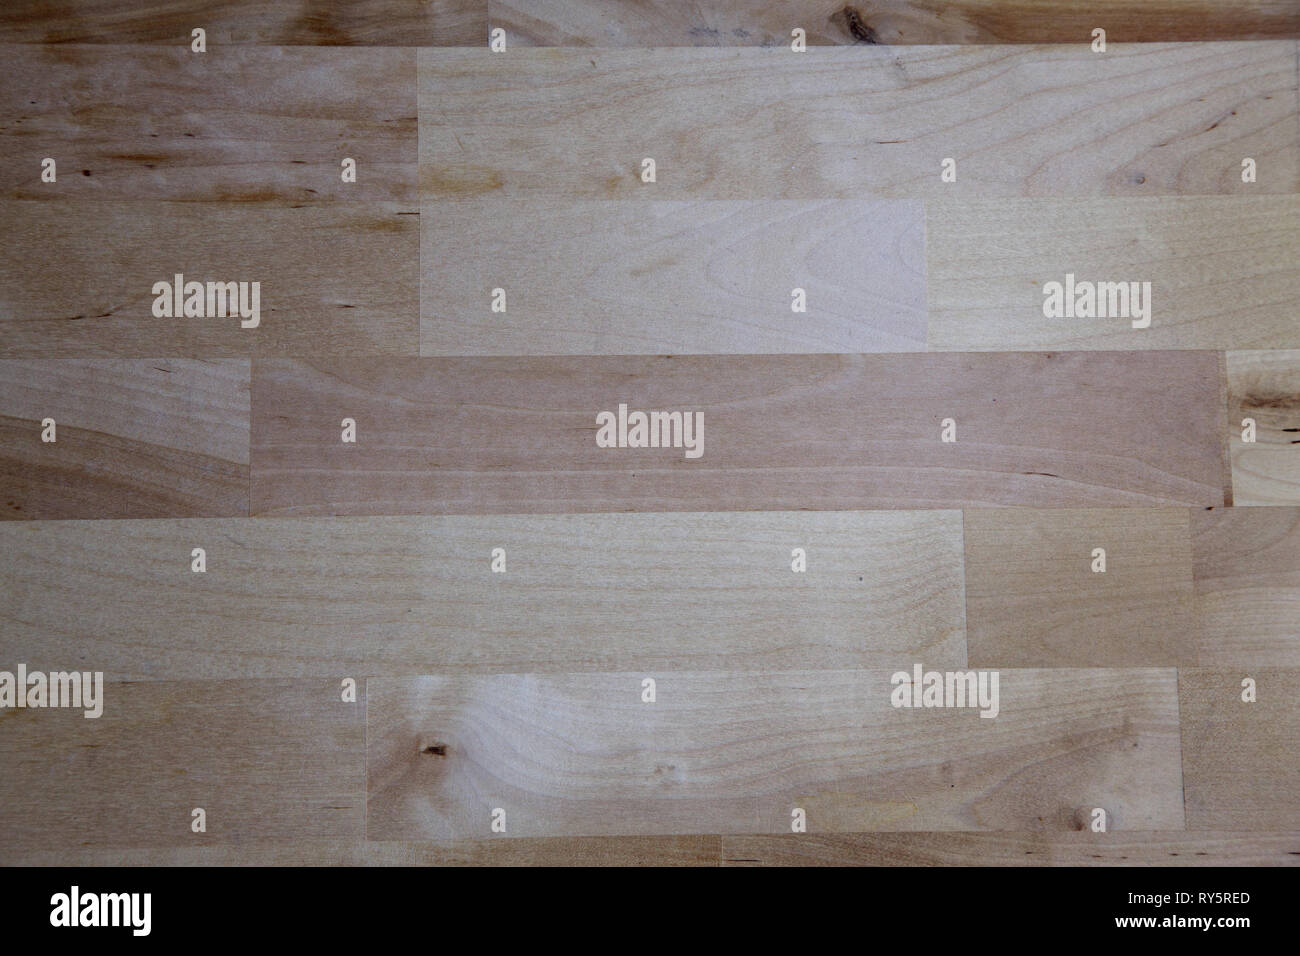 Wooden Table Top Texture Stock Photo: 240458693   Alamy